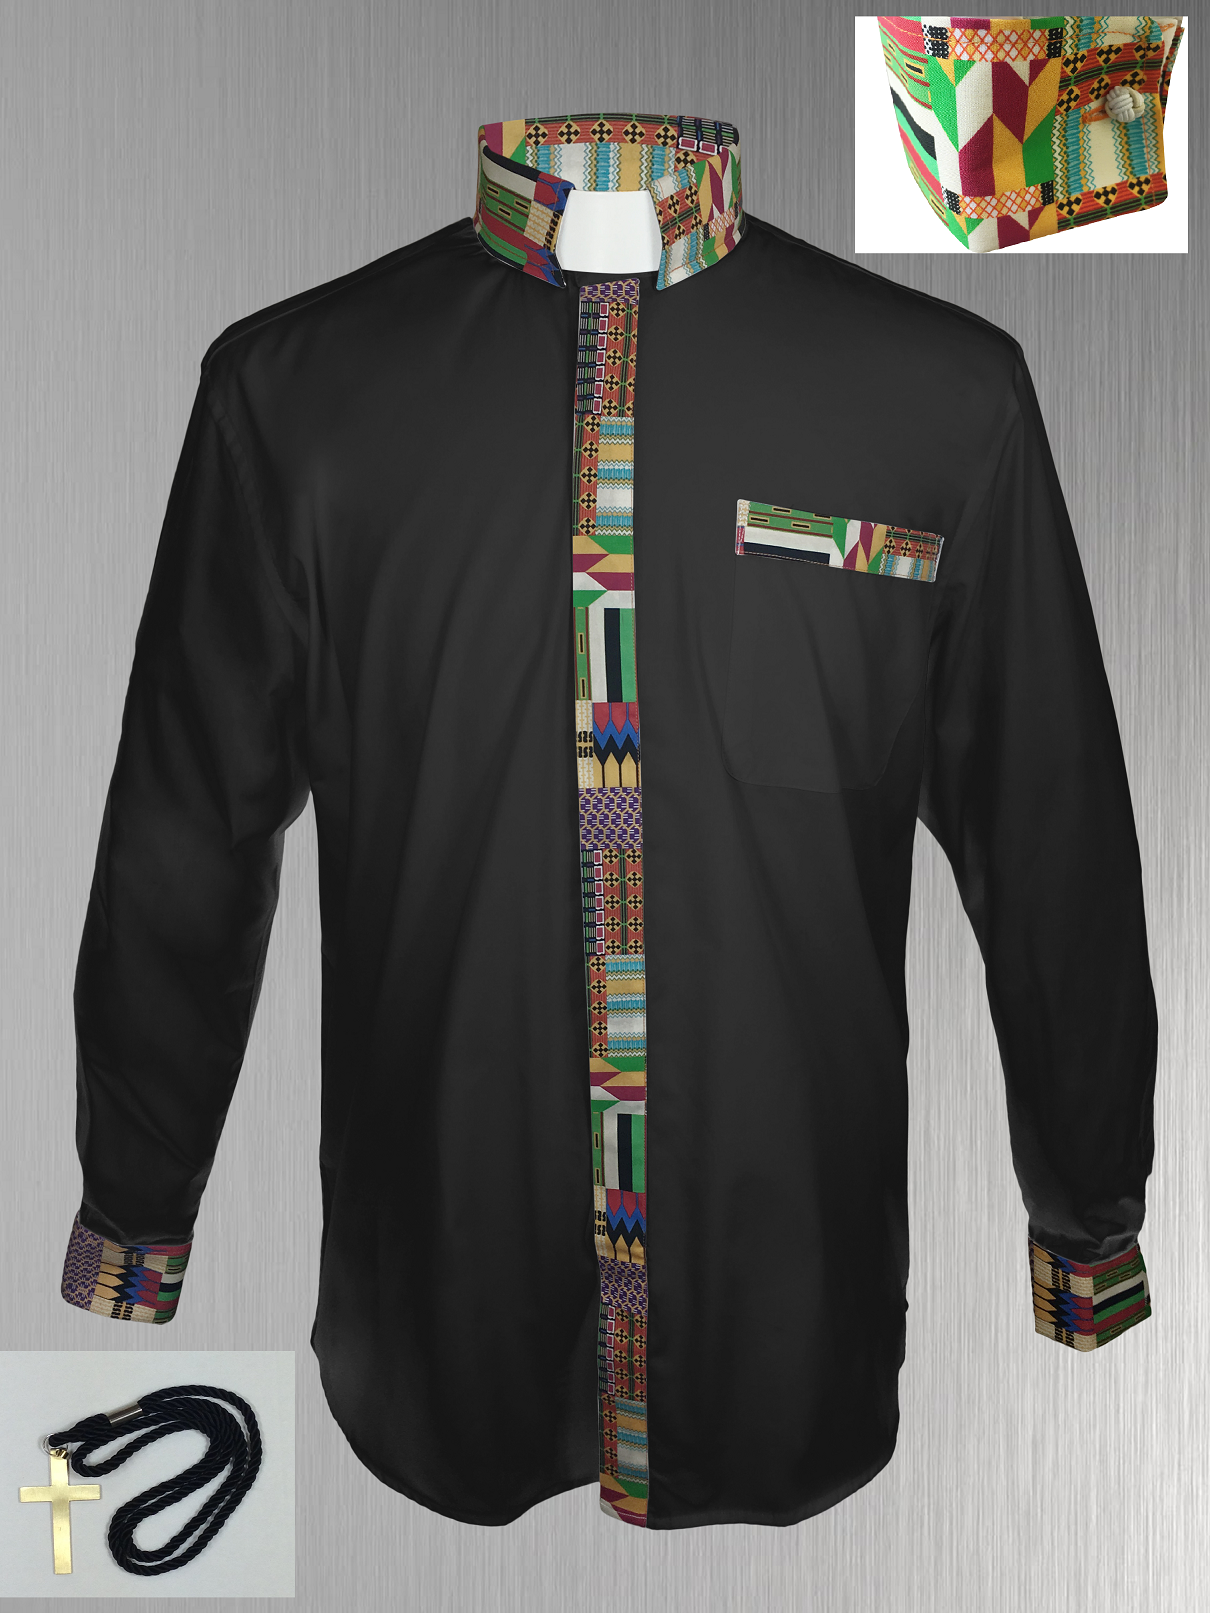 146. Custom Edition Kwangali Cloth Men's Tab Collar Clergy Shirt Set - Black